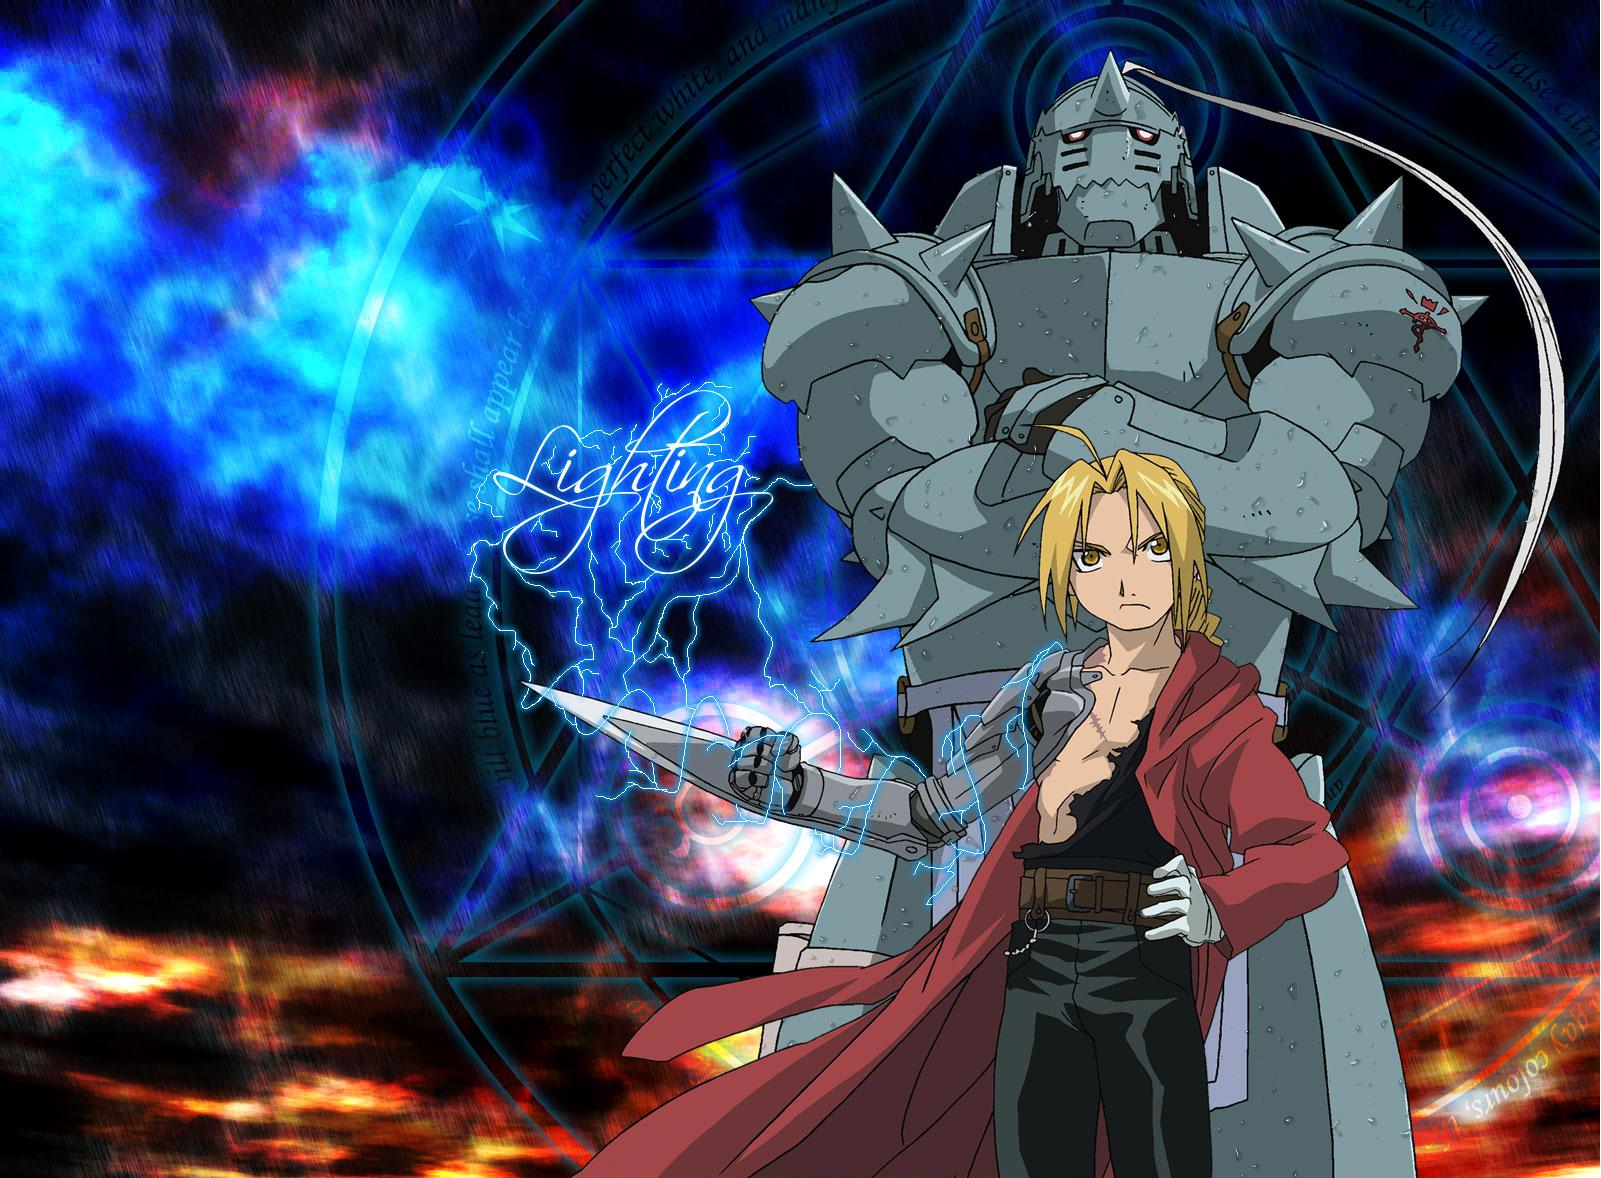 Fullmetal Alchemist Brotherhood wallpaper 6